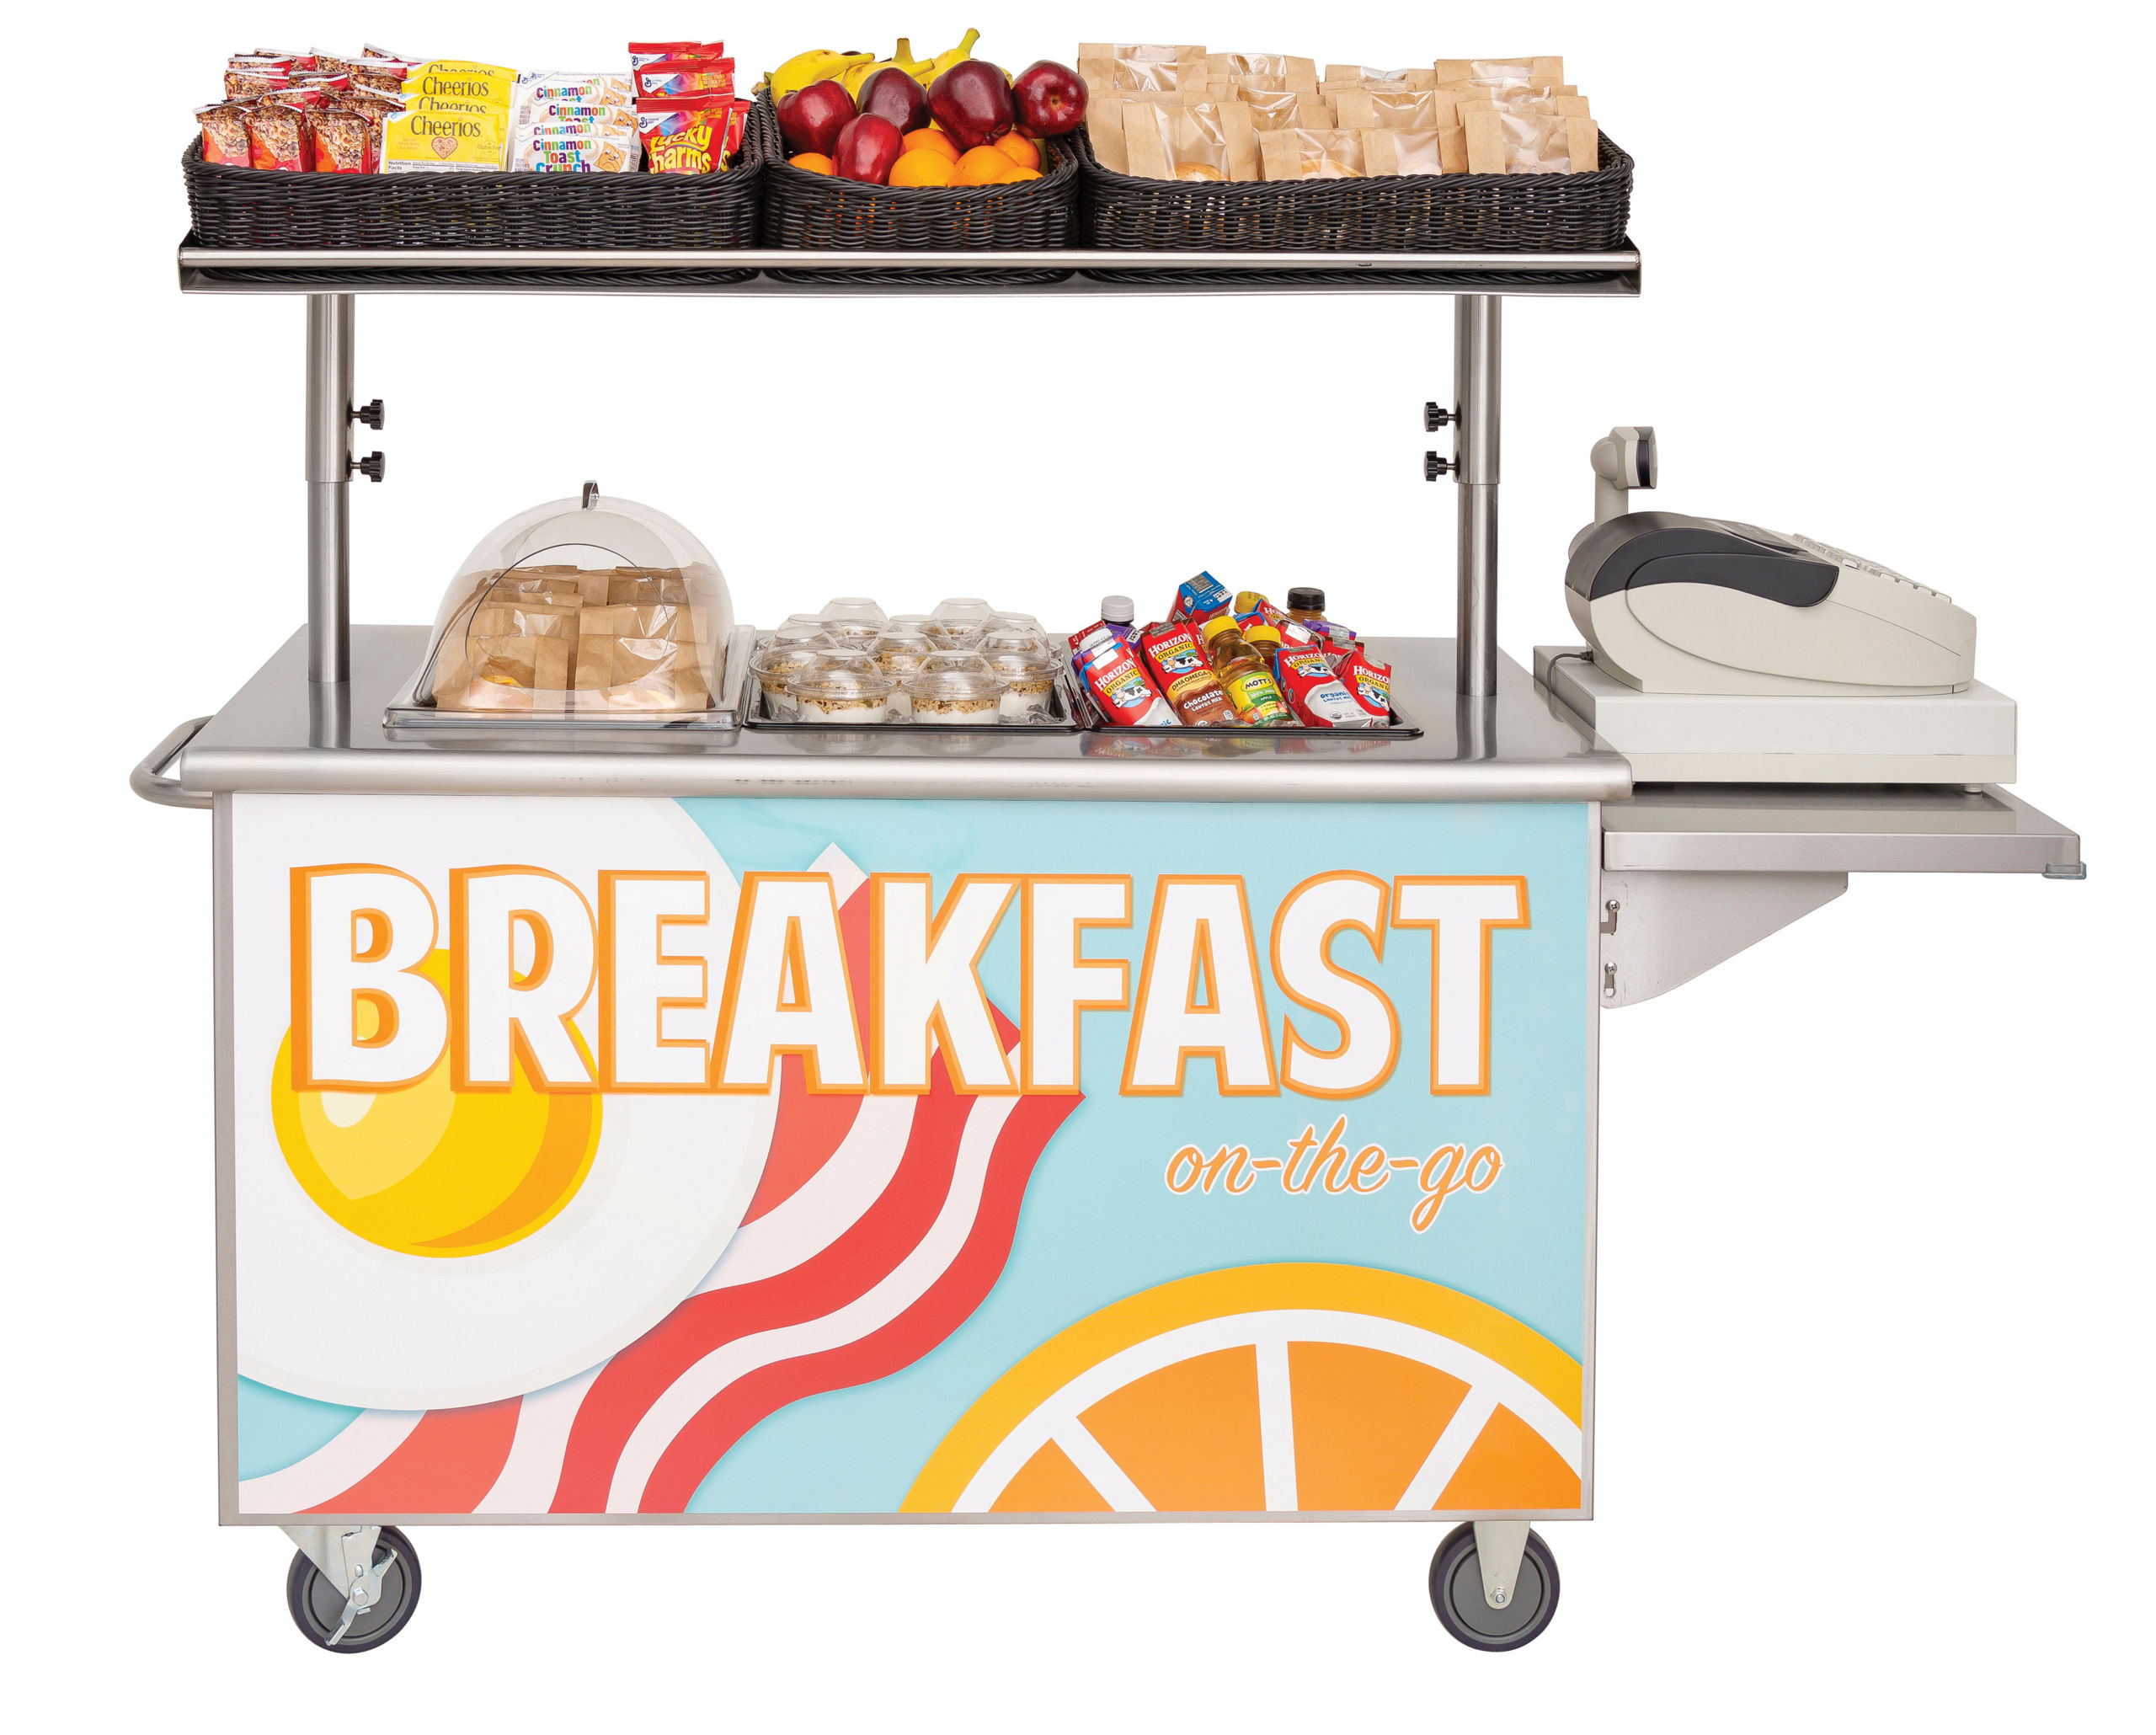 Meal carts are increasing student access to more nutritious food choices in schools